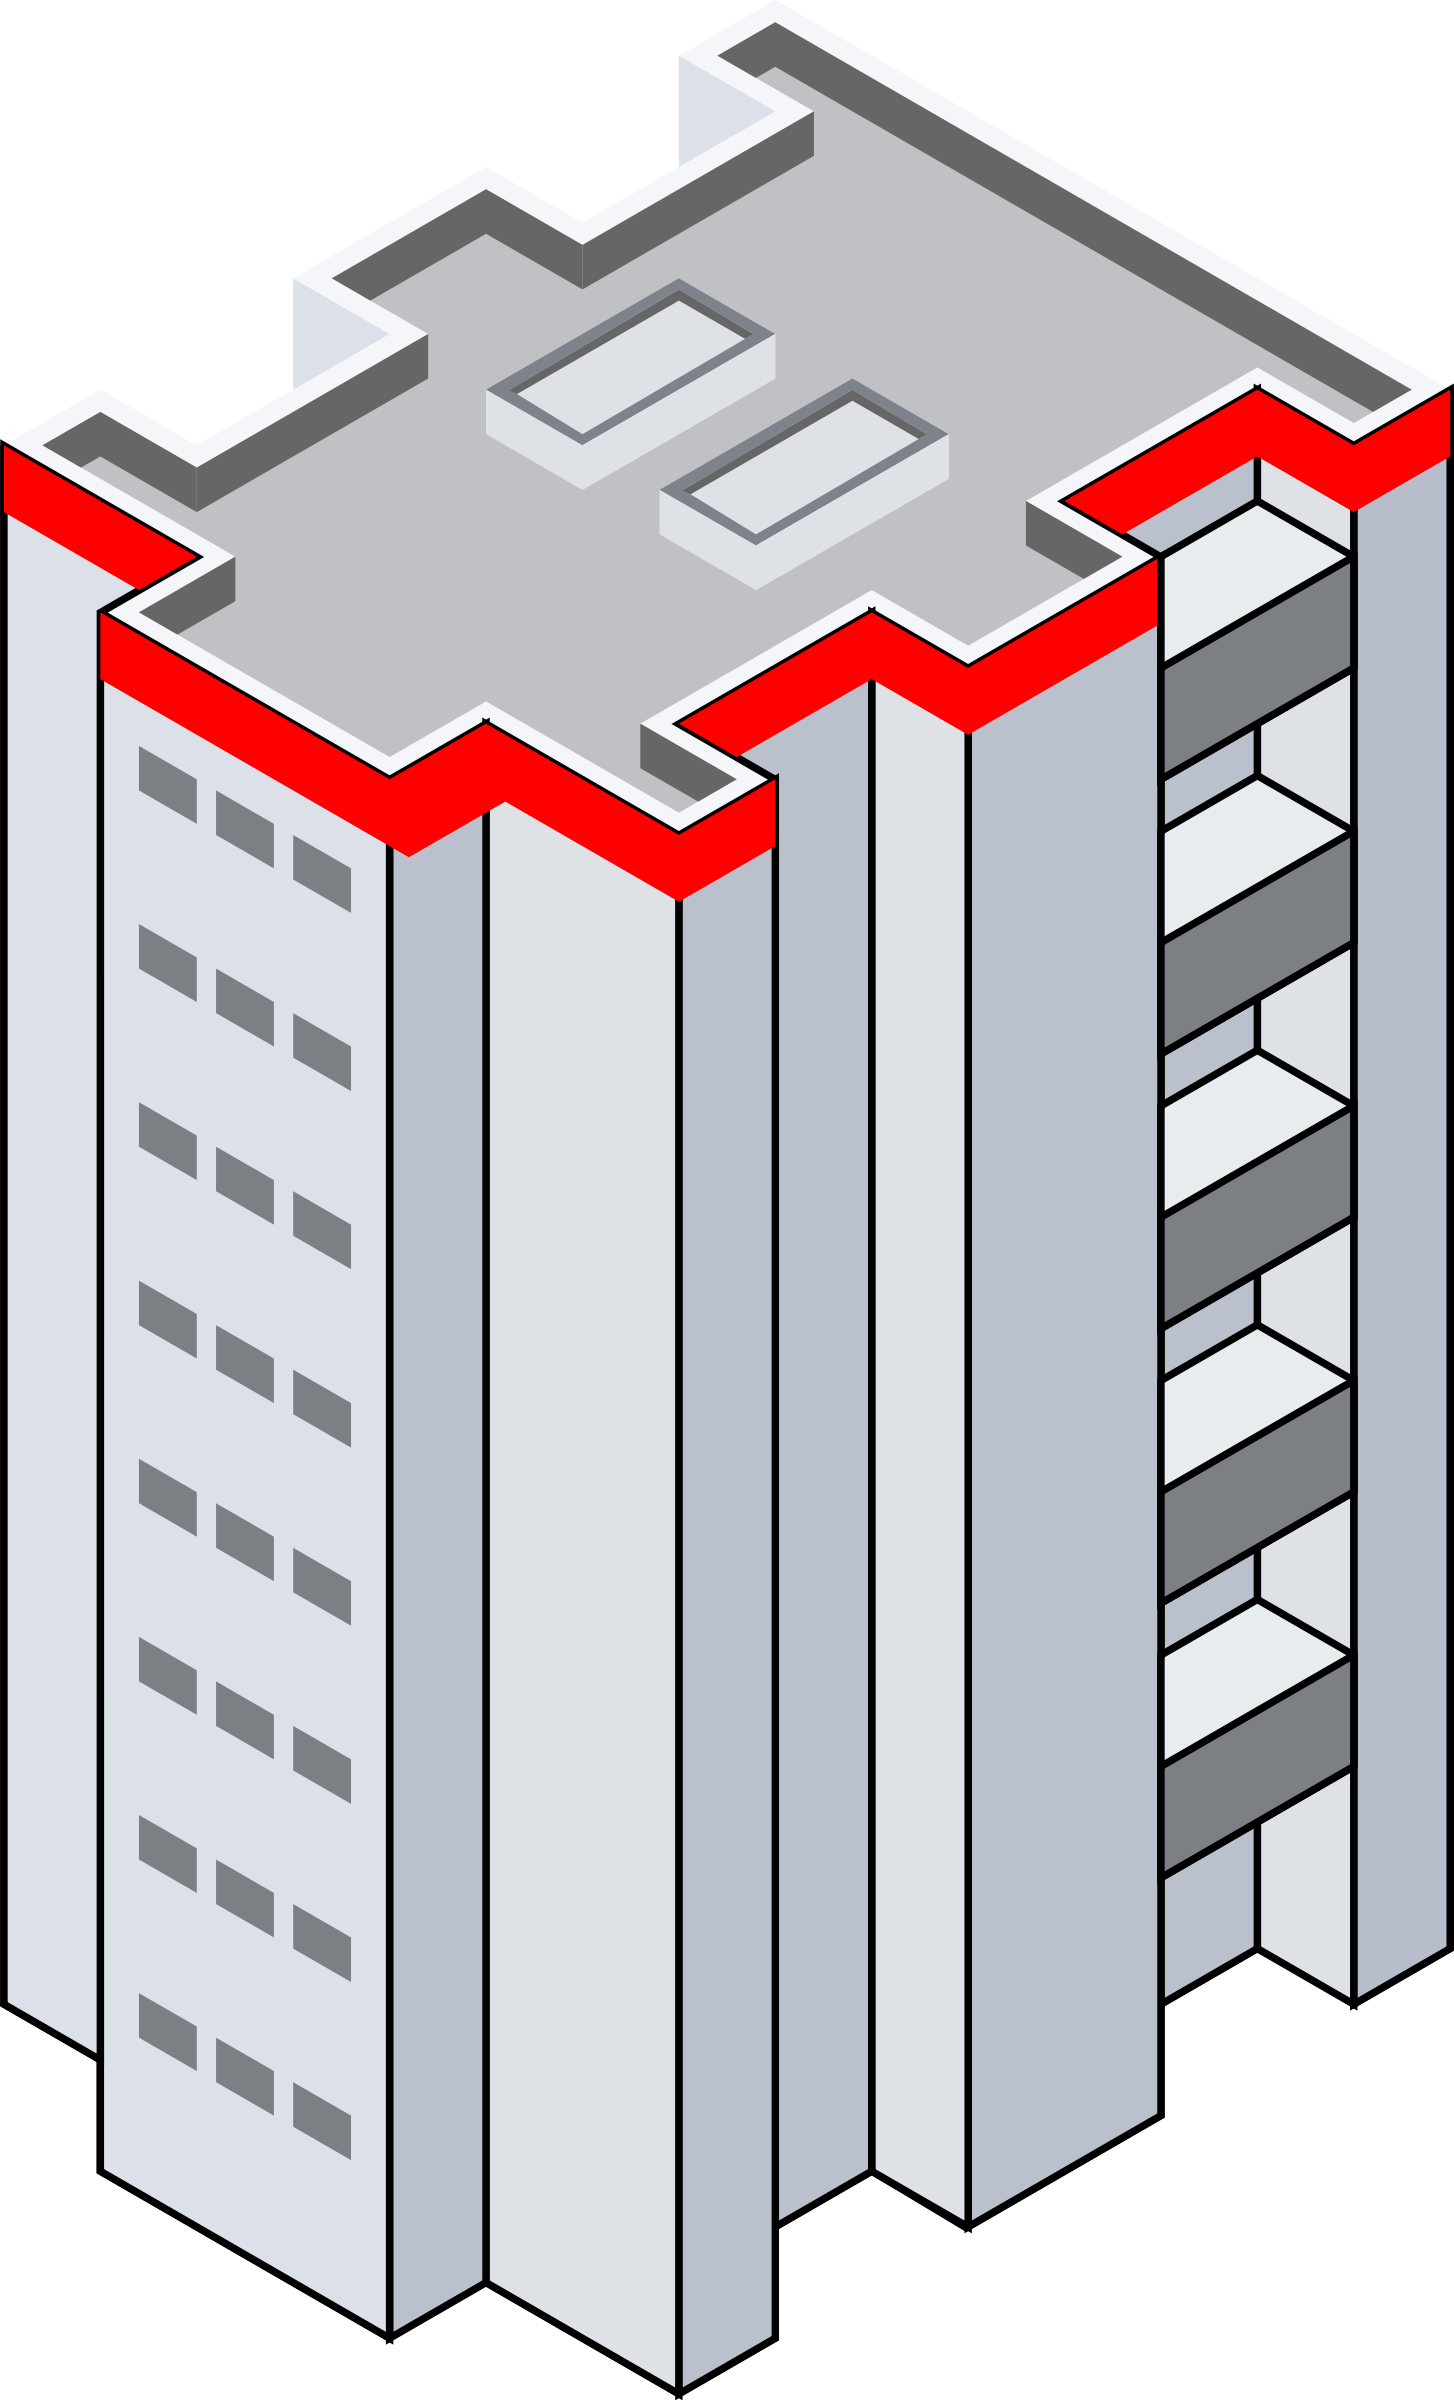 Isometric Building by eternaltyro